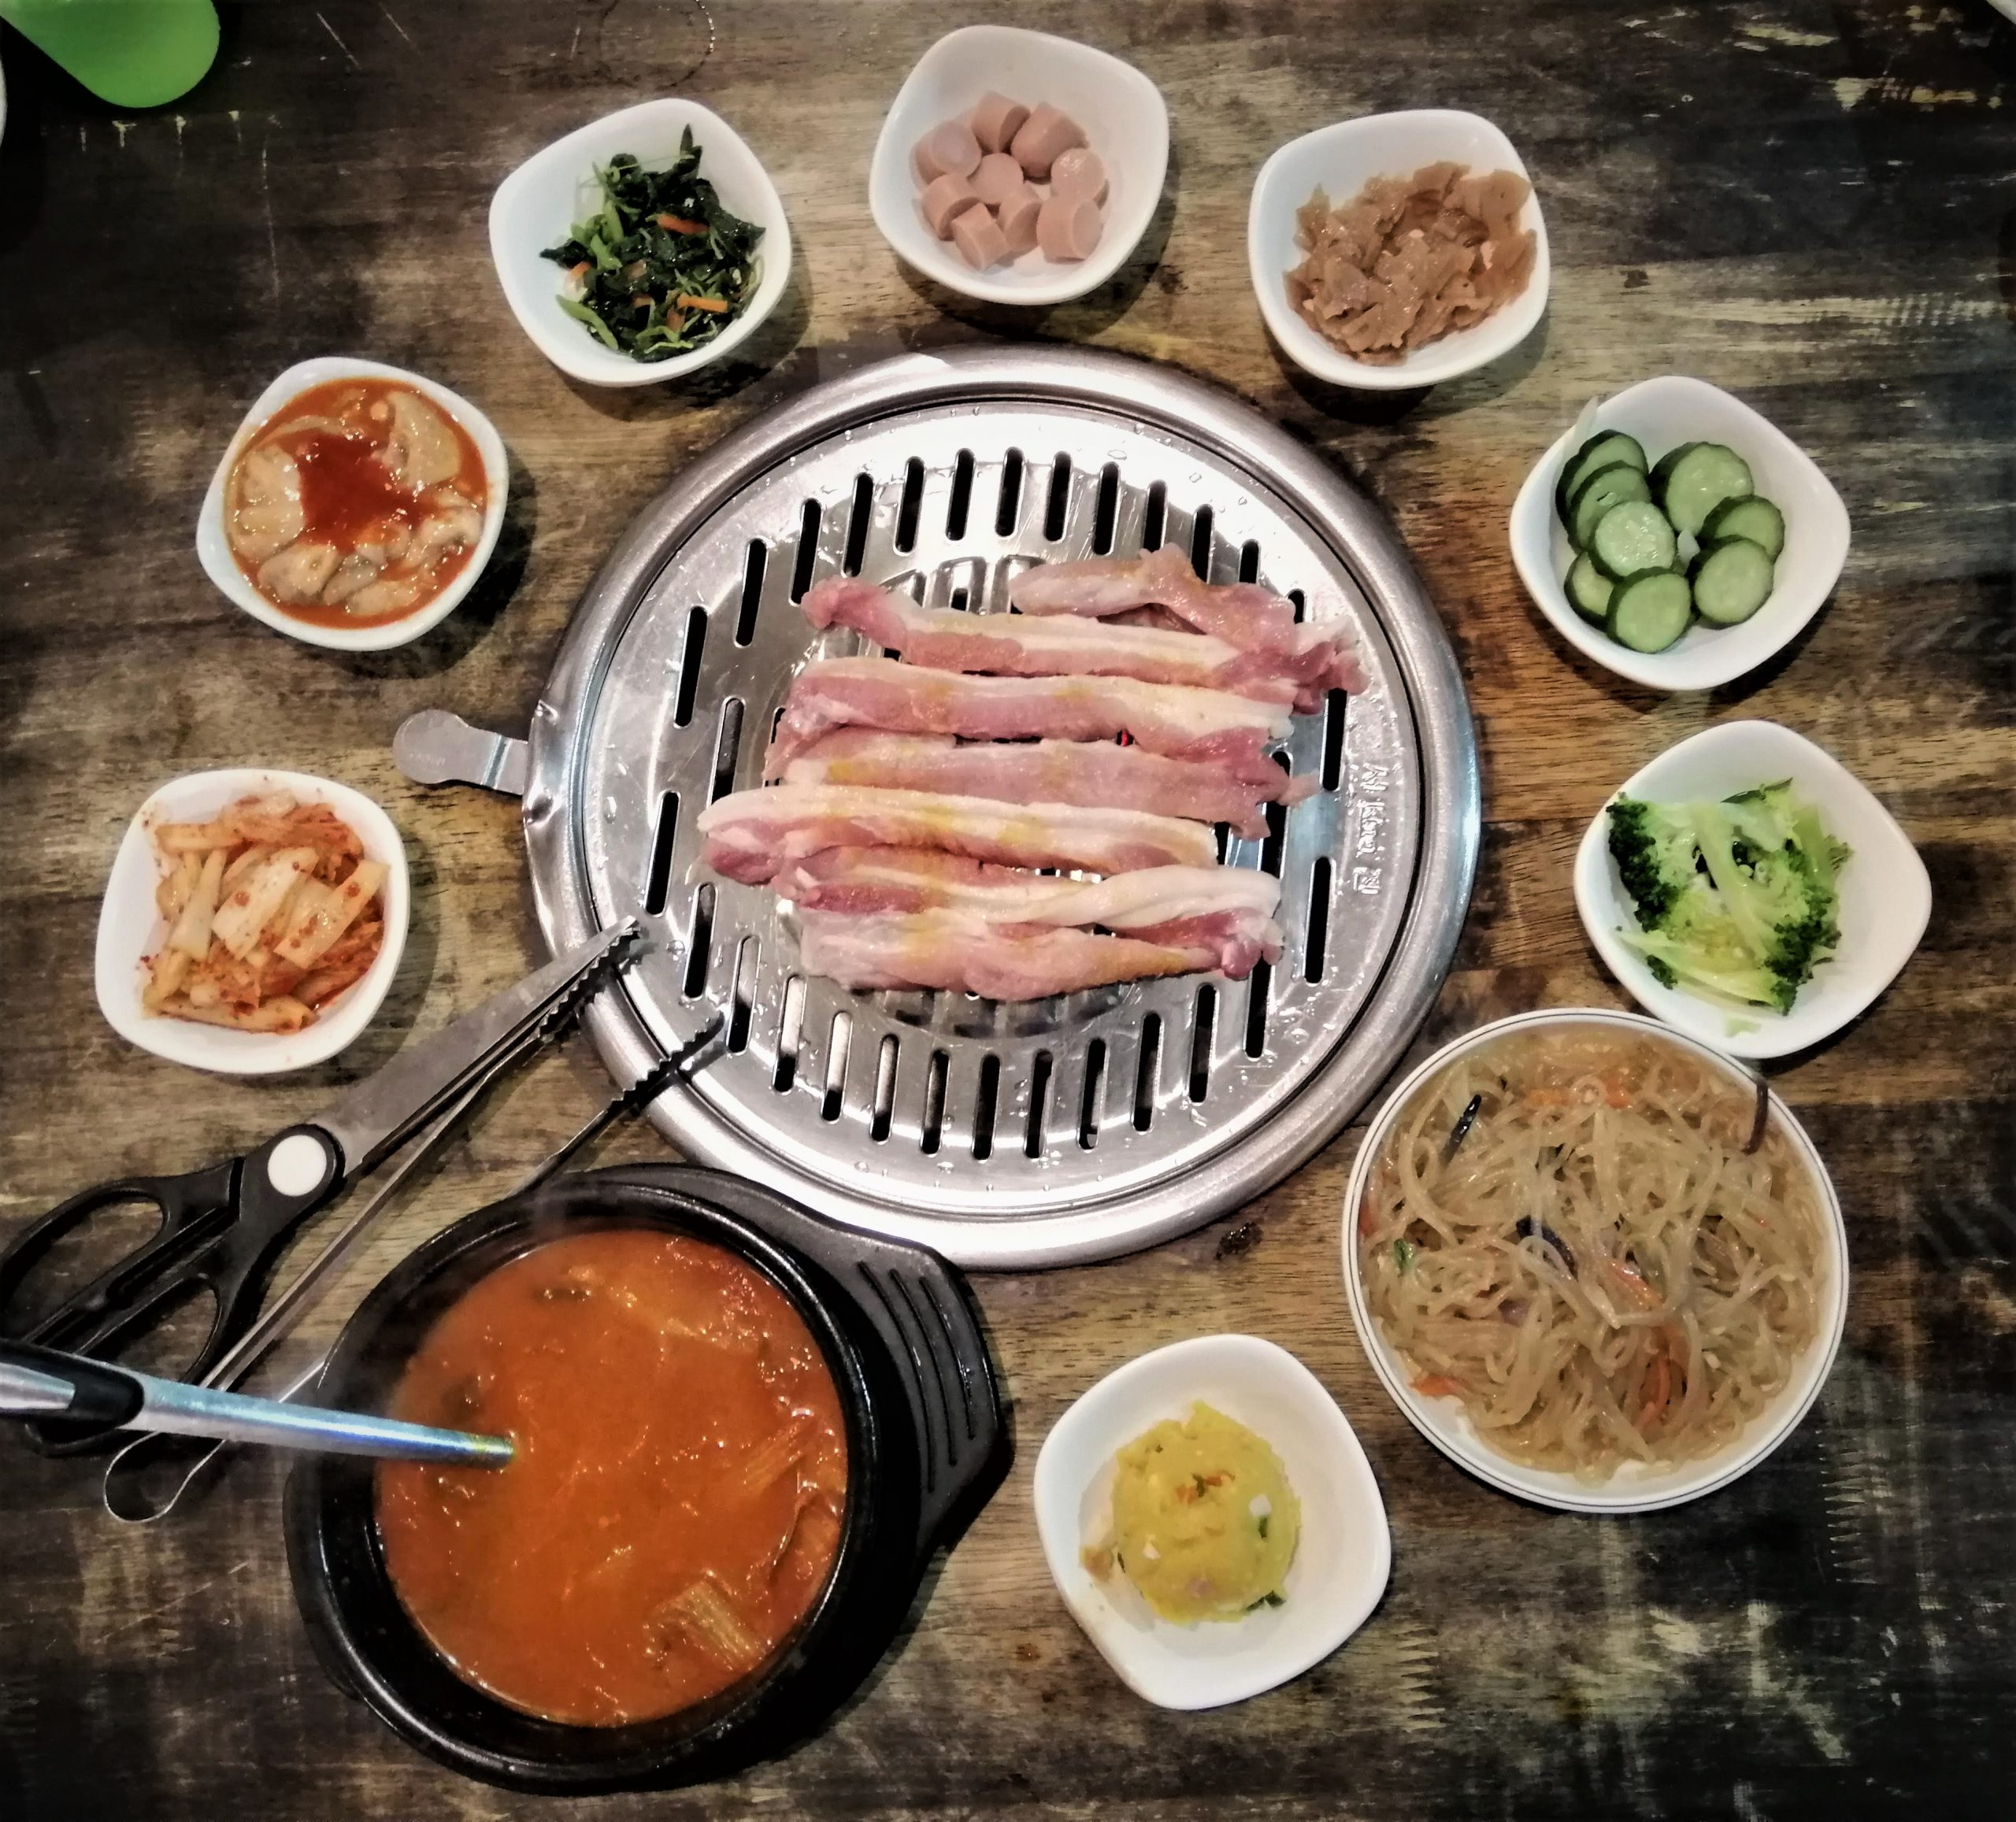 Load up on protein at Seo Gung Korean BBQ